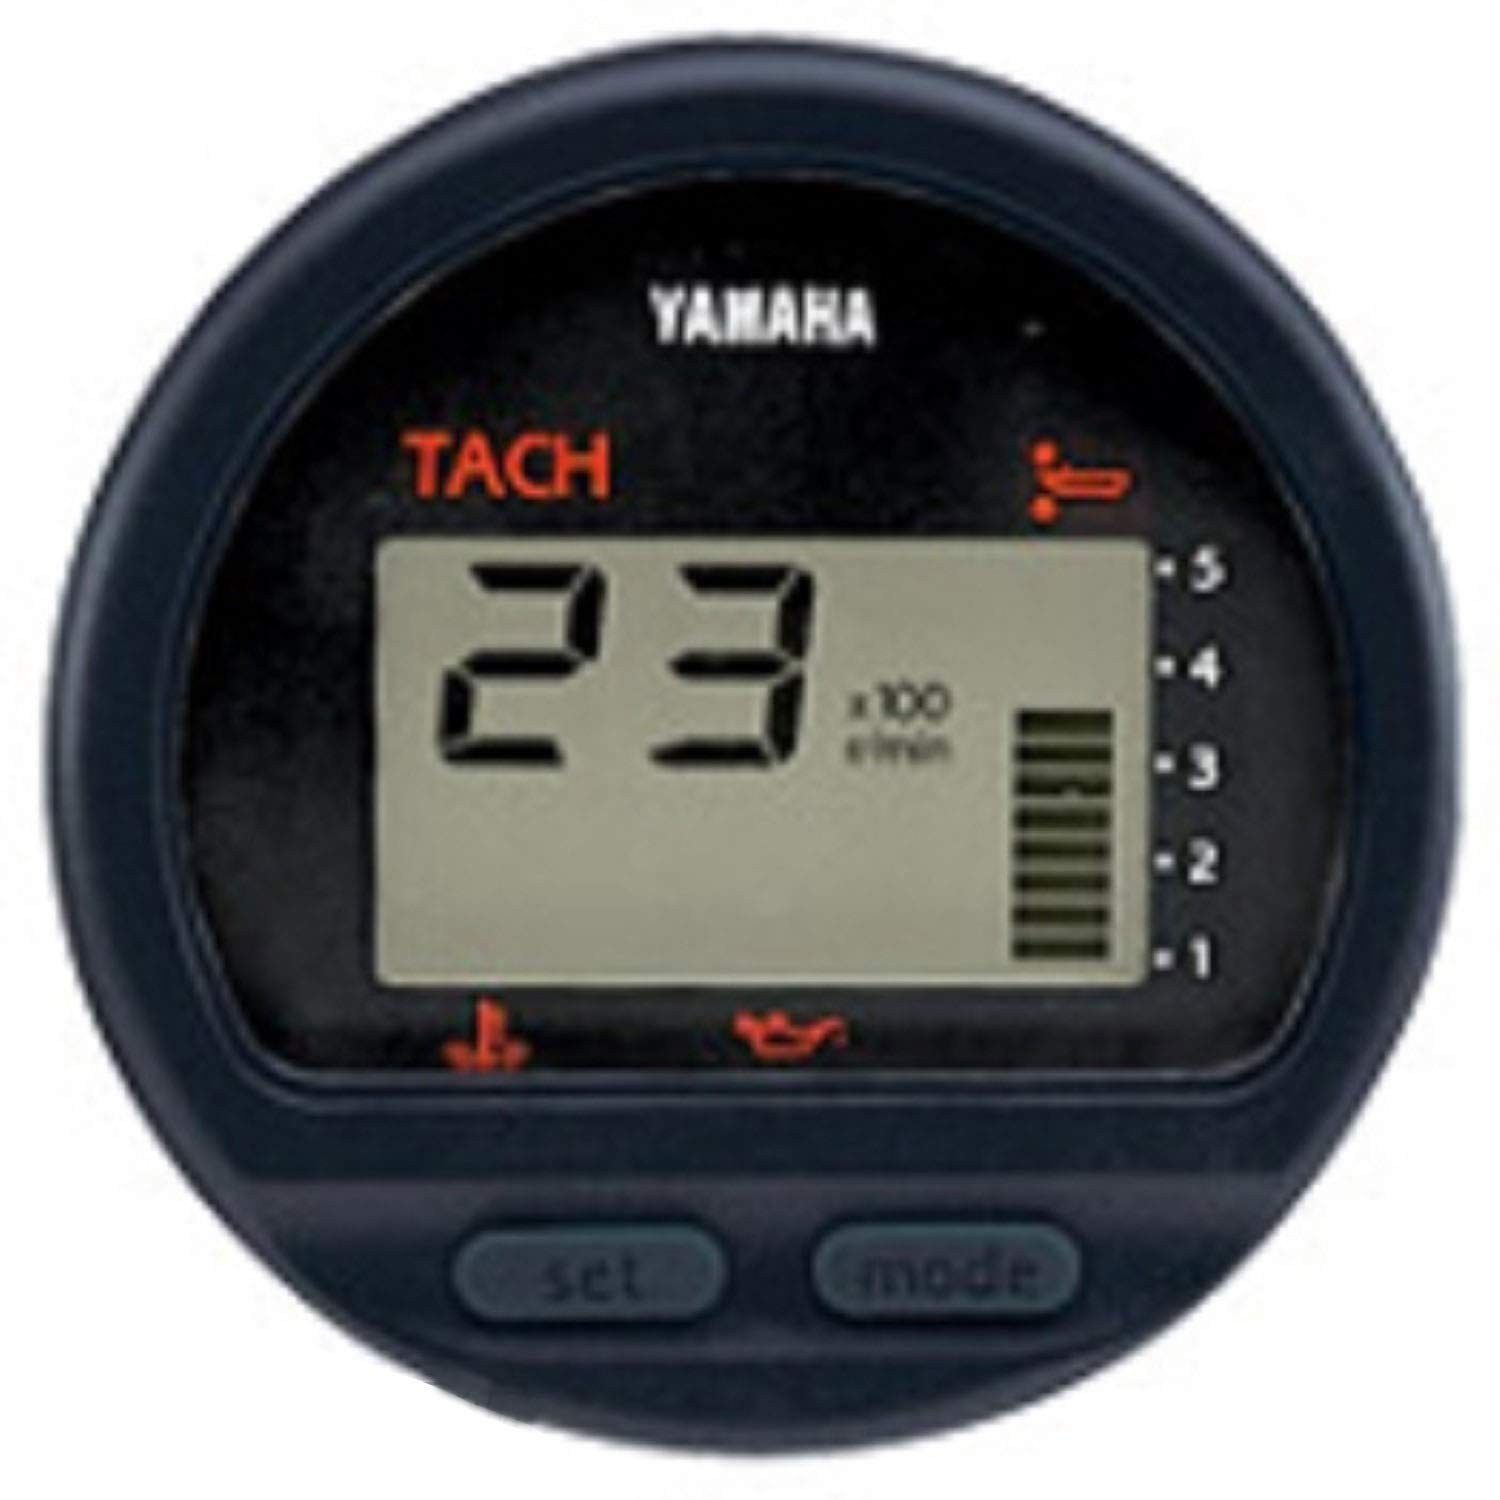 Yamaha Outboard Gauges | Wiring Schematic Diagram - pokesoku.co on